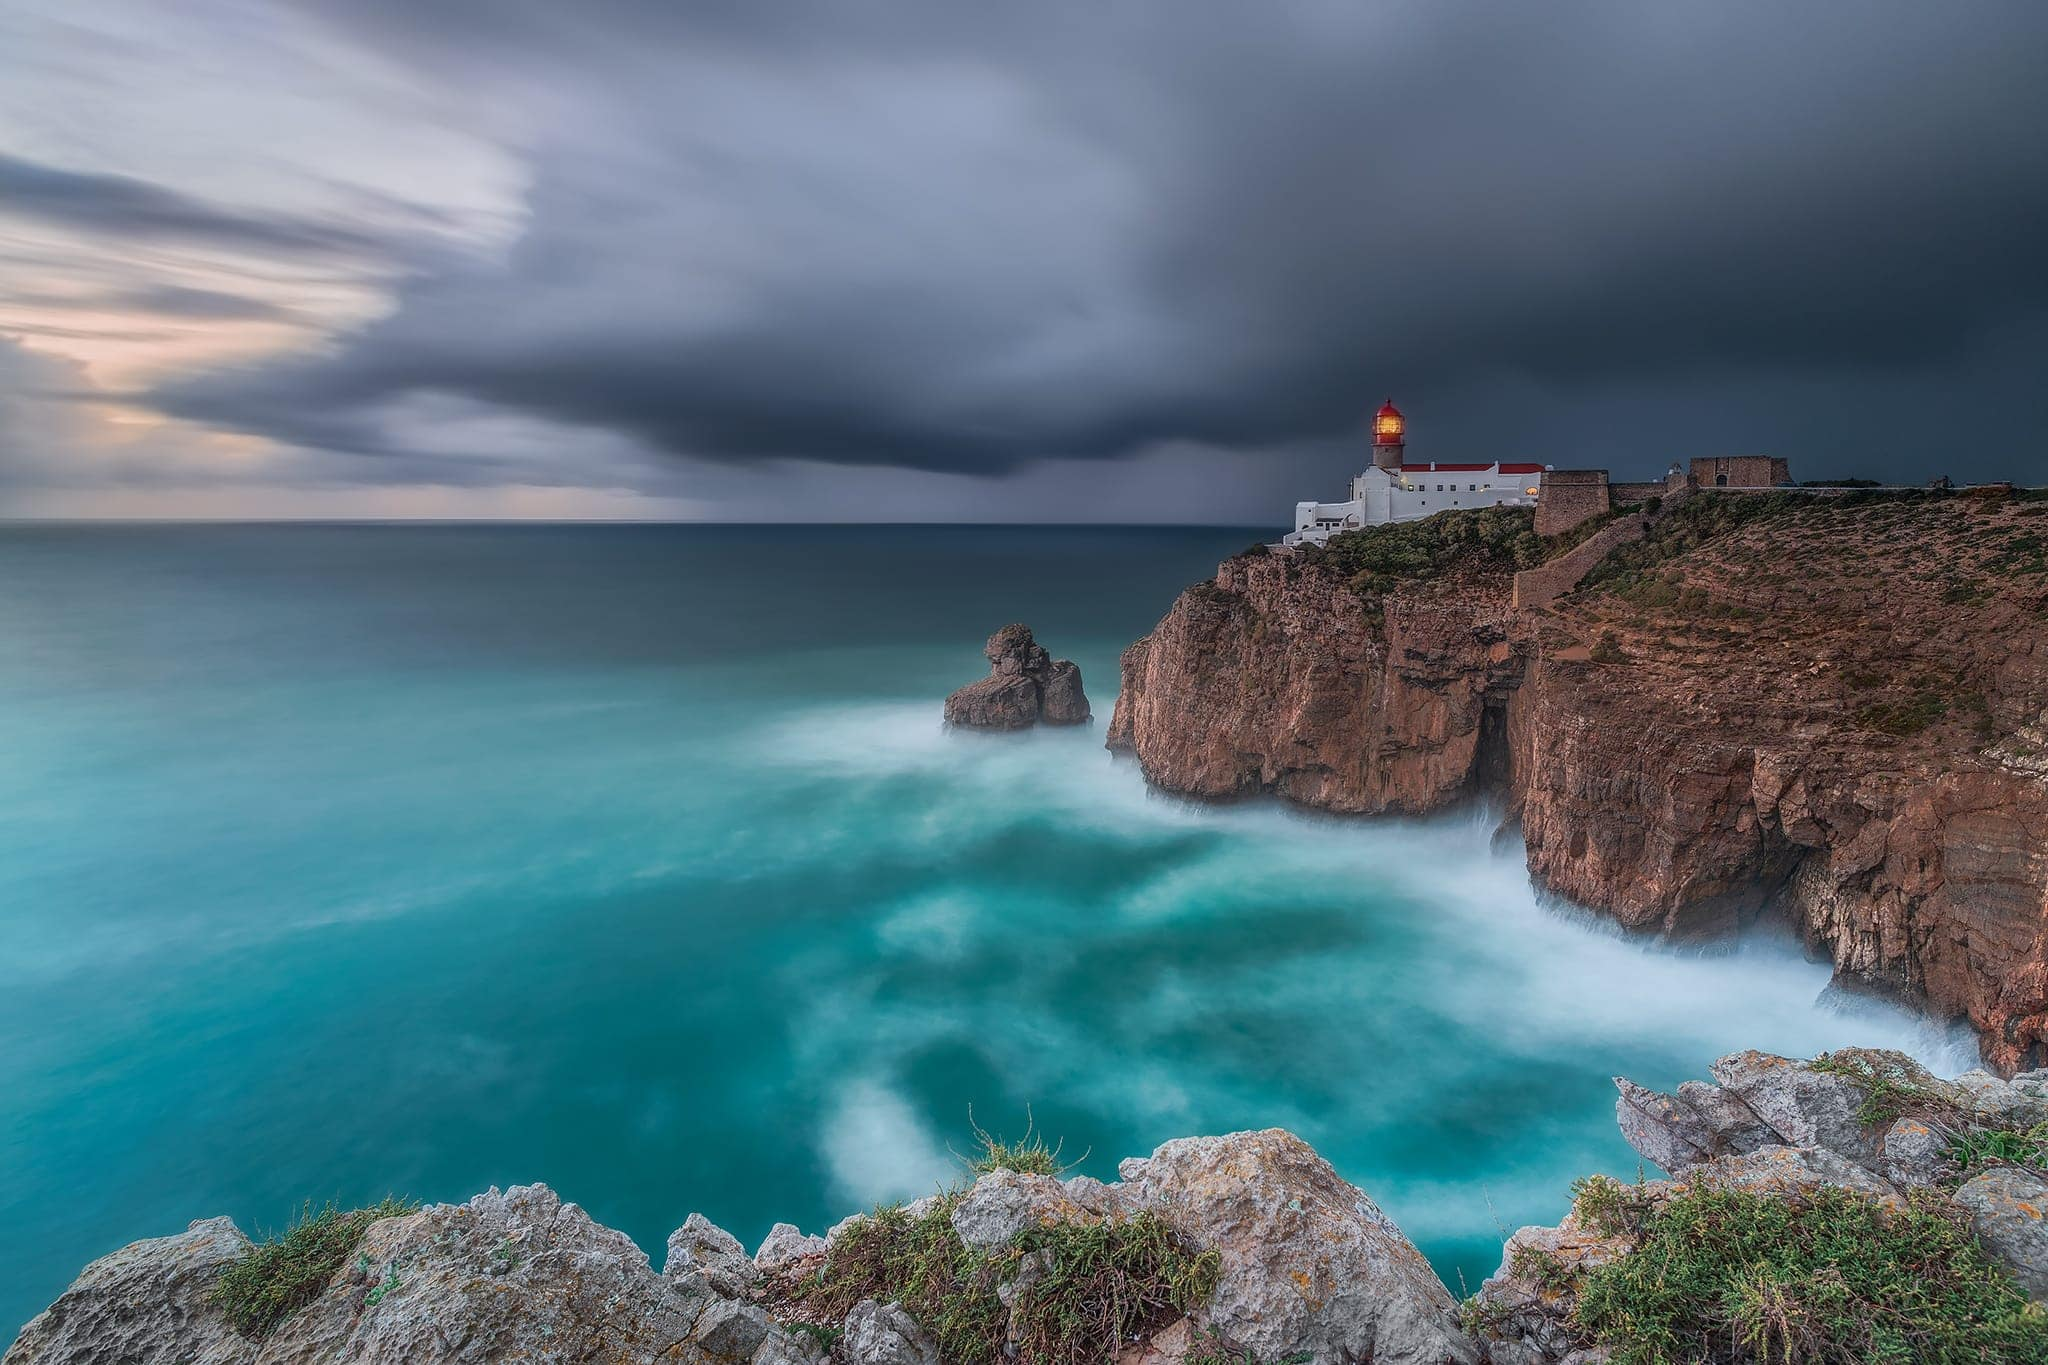 Francesco Gola Seascape Portugal Long Exposure Storm Rain Blue Lighthouse Sao Vicente